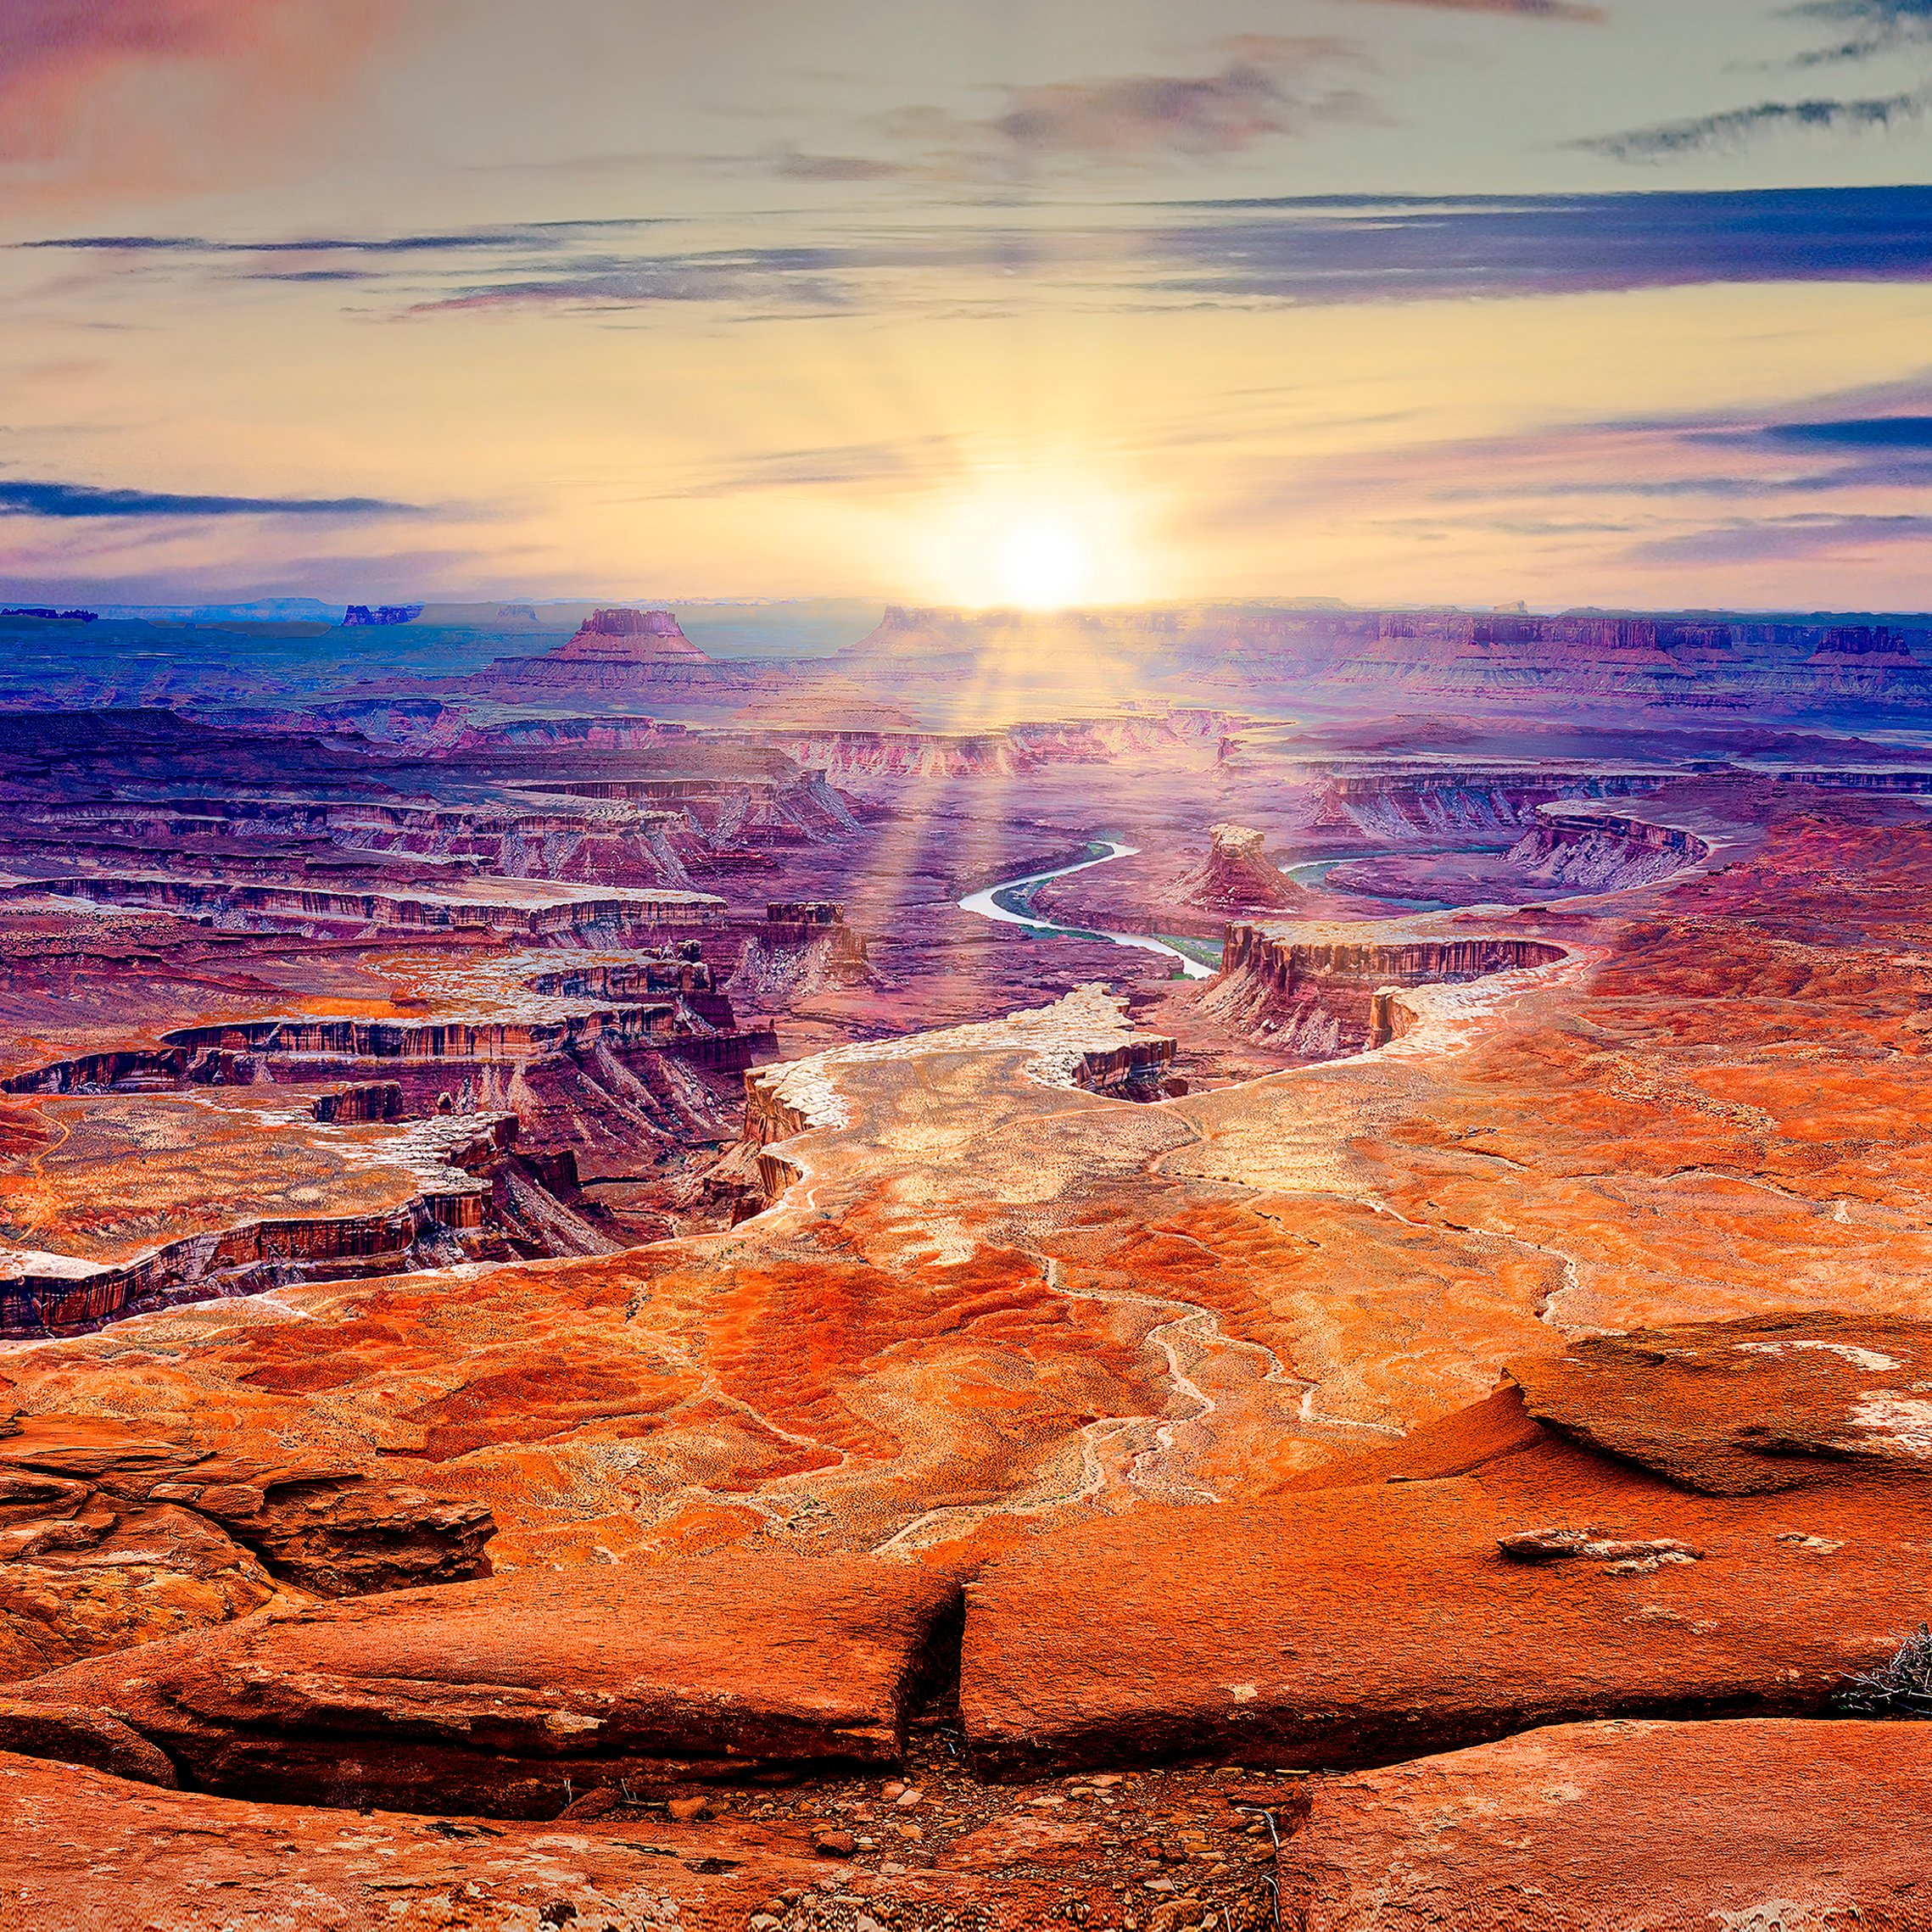 GREEN RIVER OVERLOOK - located in Canyonlands National Park and one of my favorite locations to photograph. This view is also available in a much wider panorama shot.